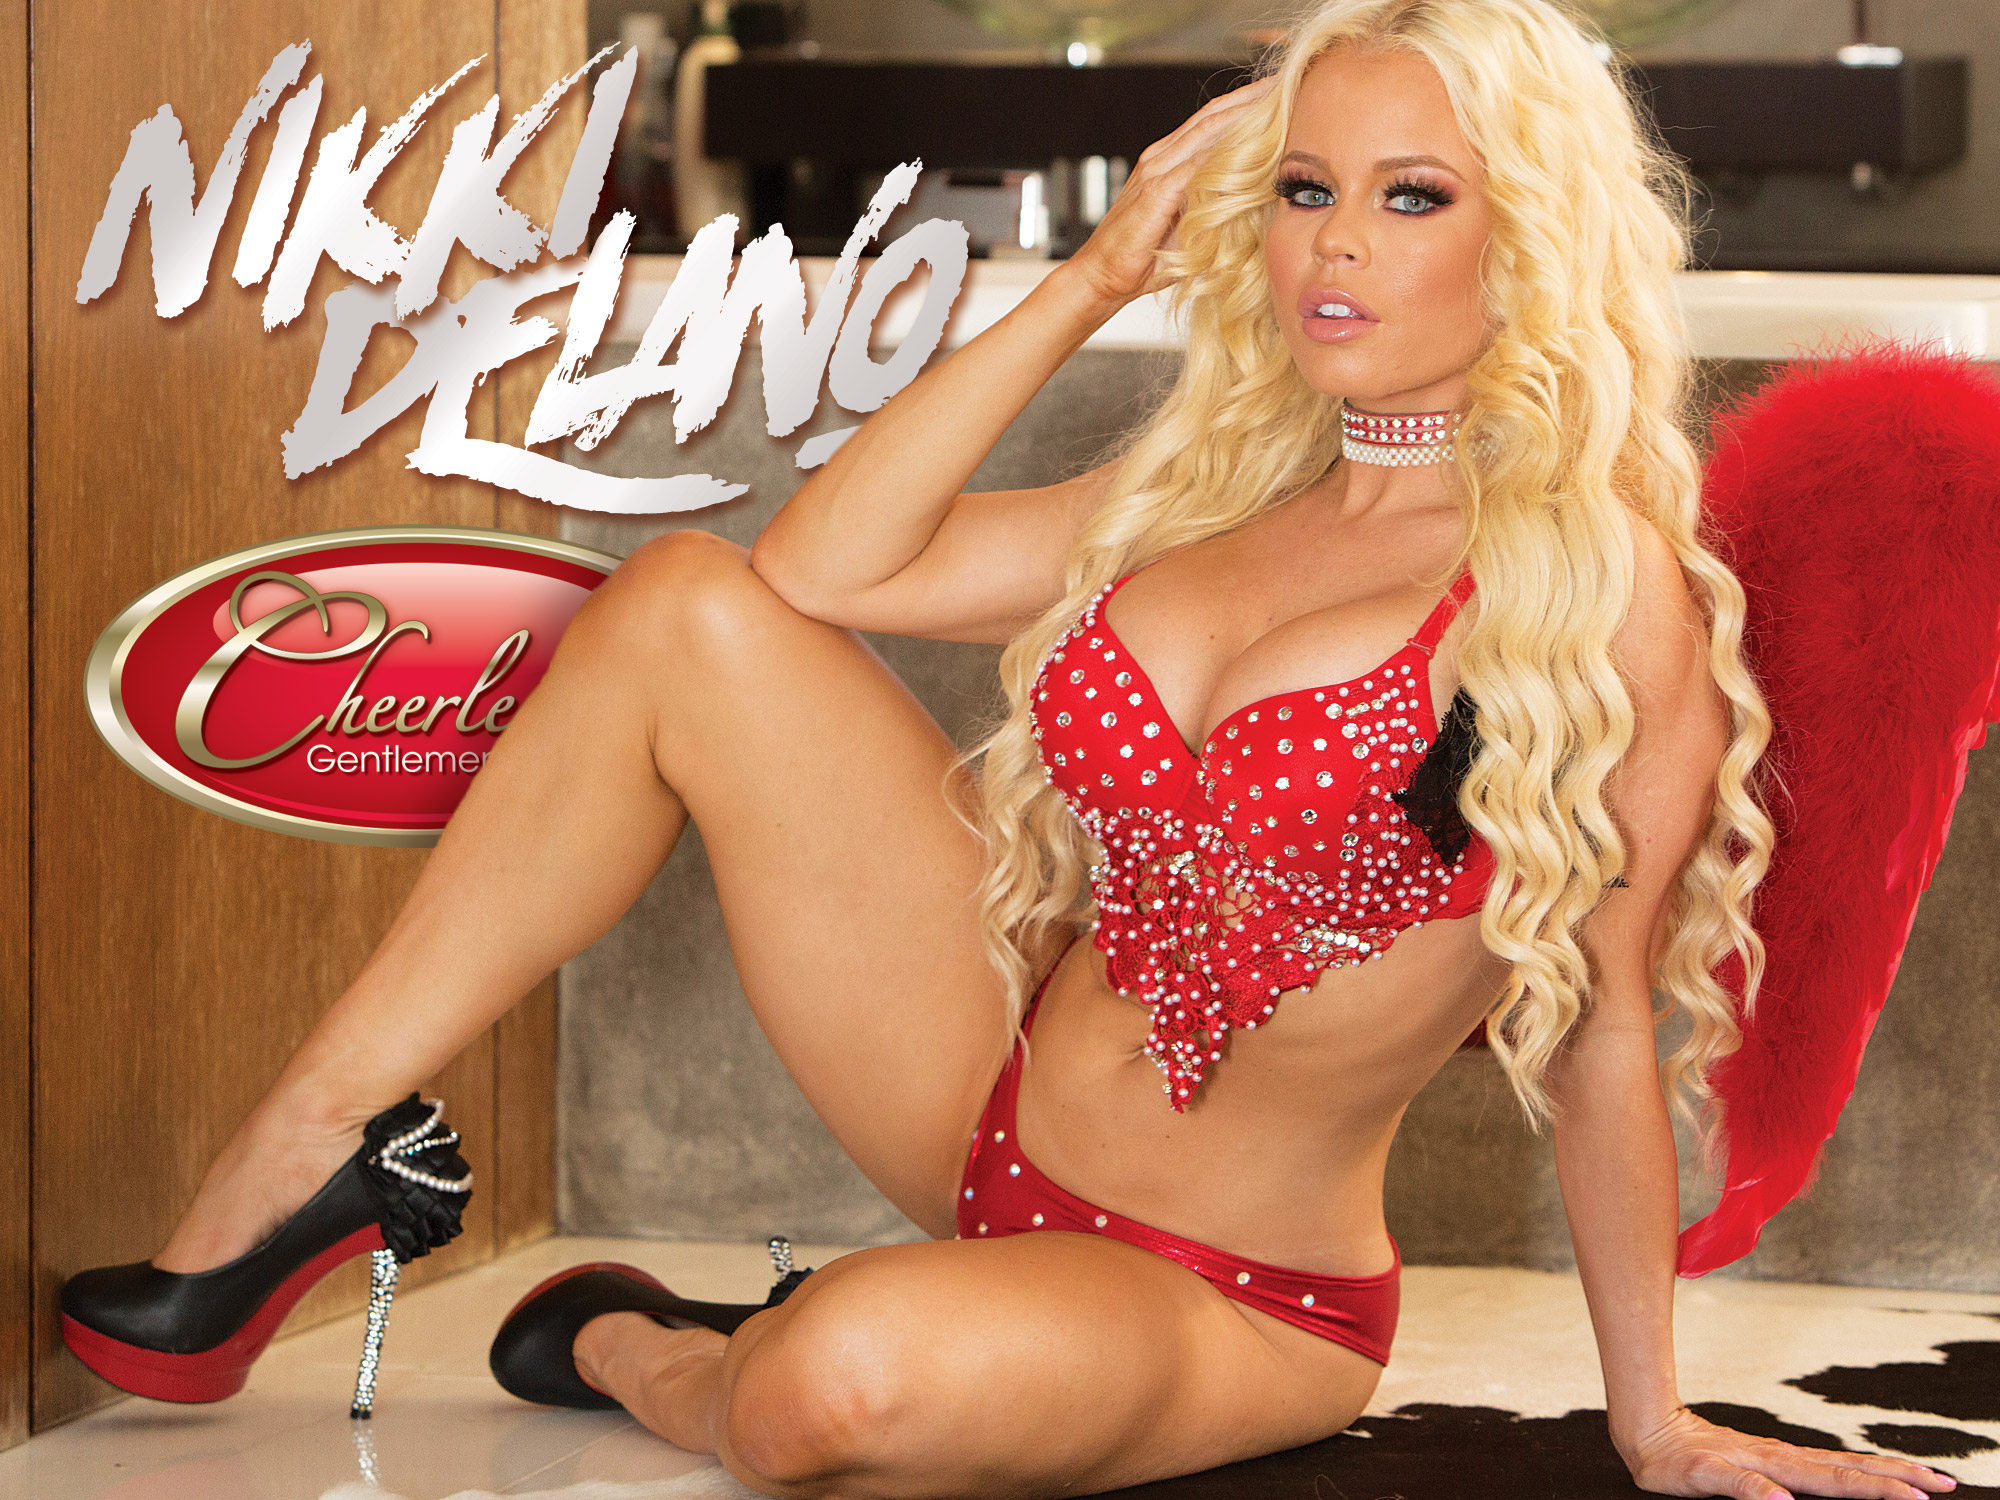 Nikki Delano - Cheerleaders Pittsburgh